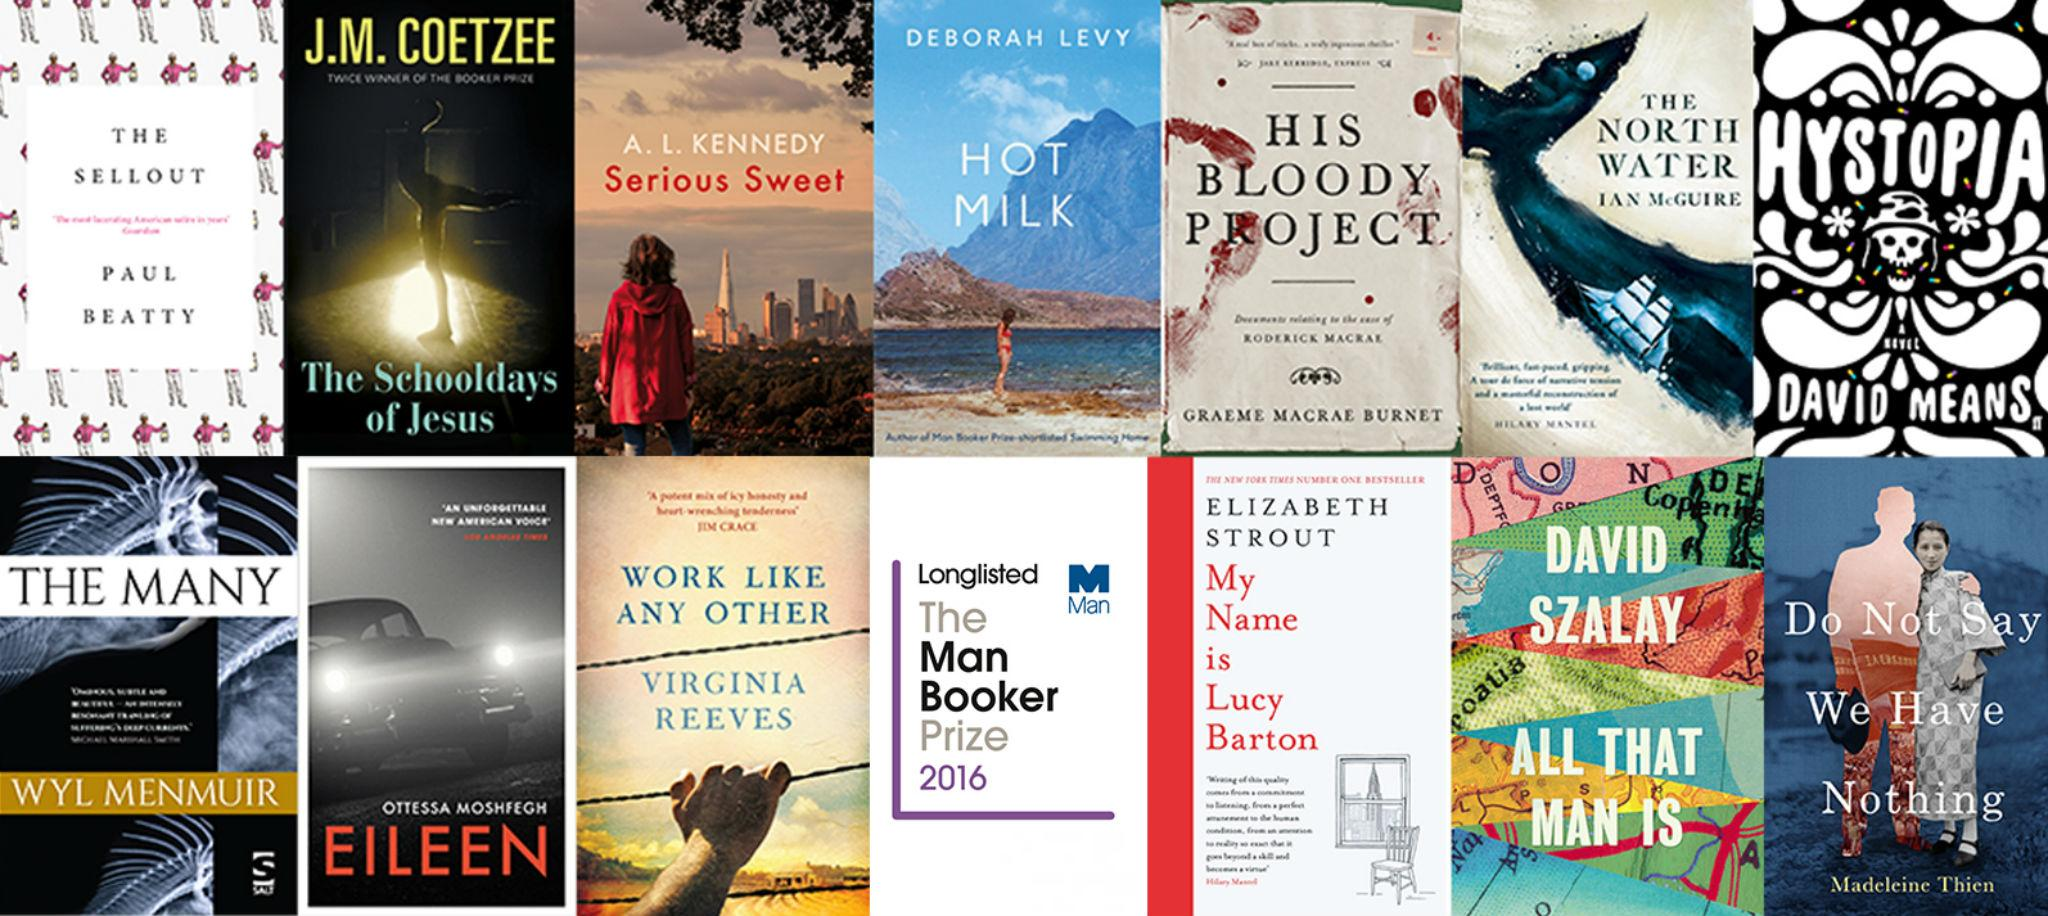 Man Booker Prize 2016 longlist: Five UK authors to compete against double winner JM Coetzee